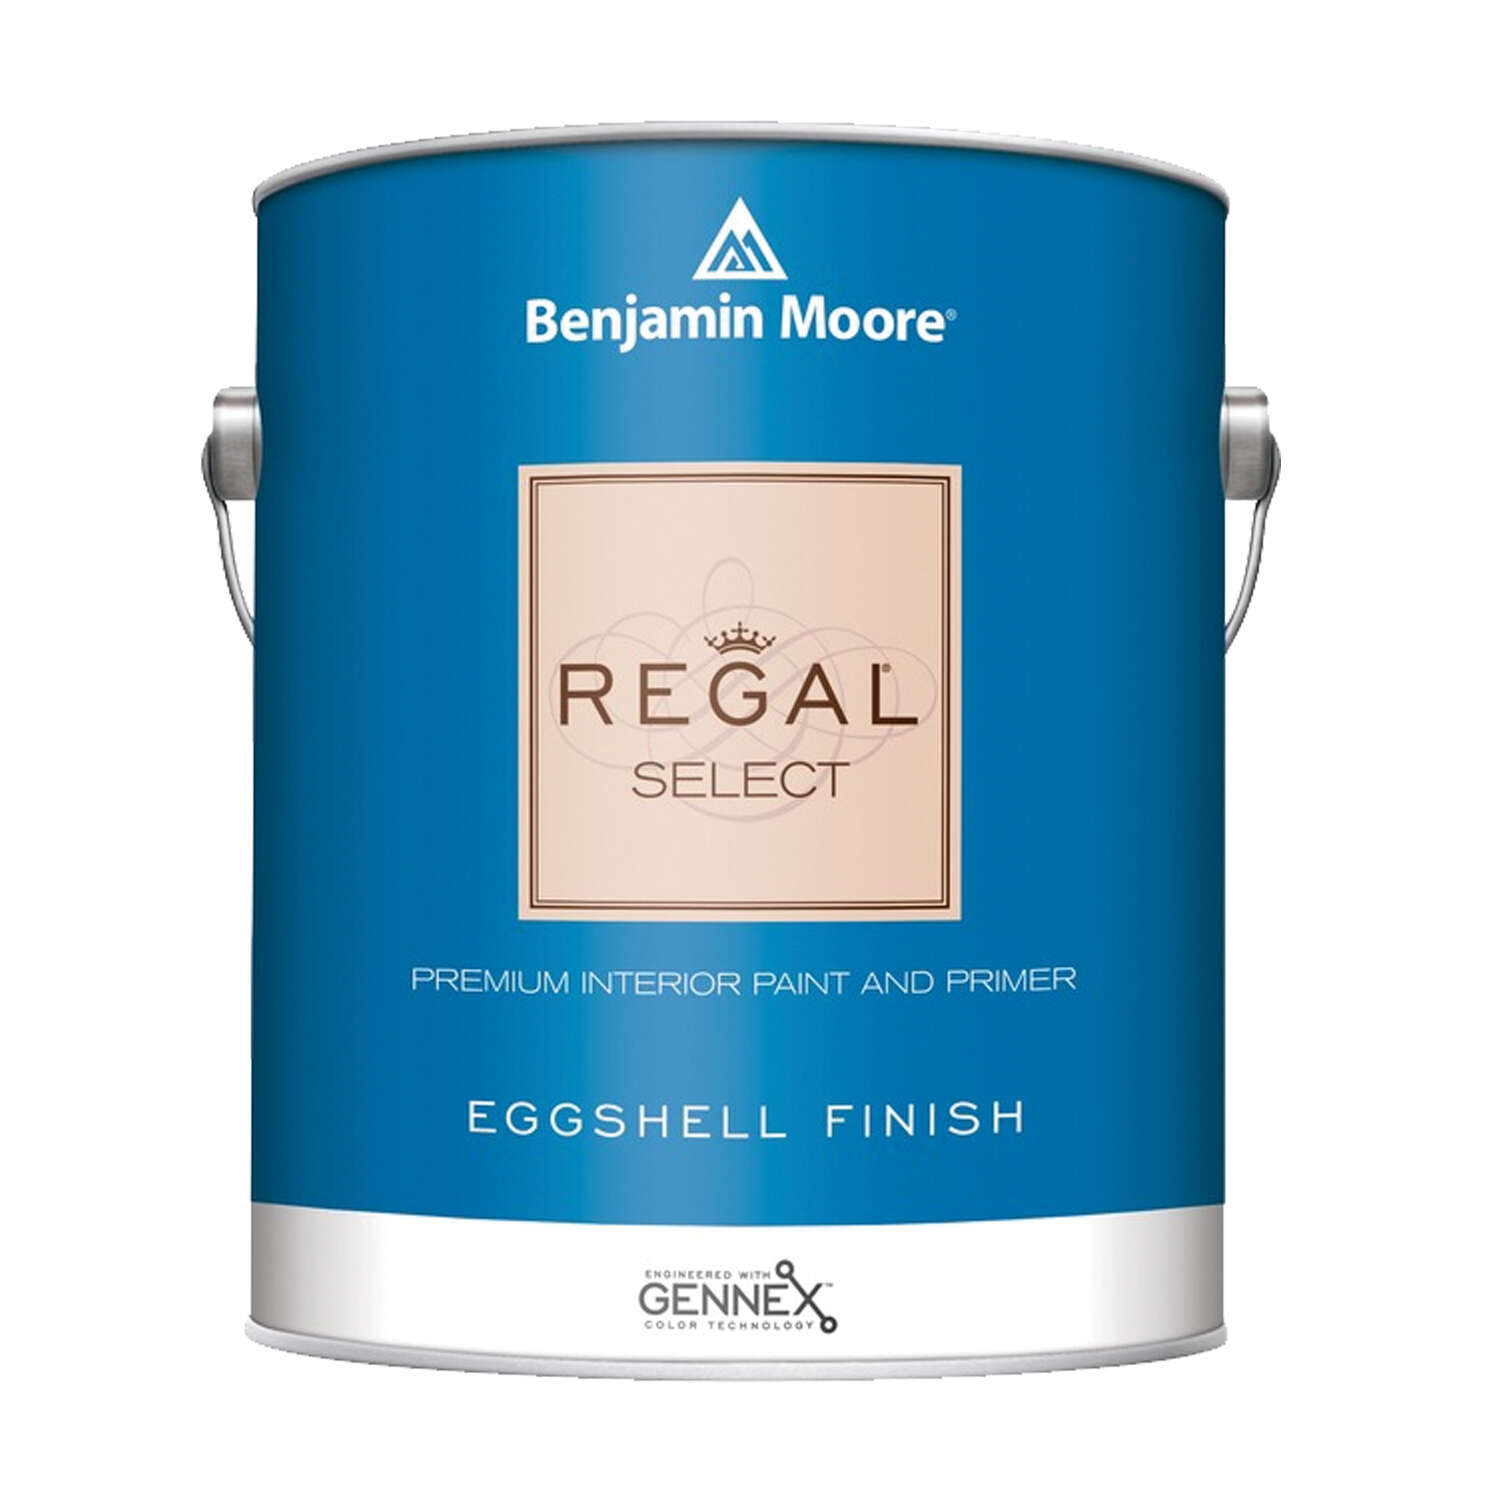 Benjamin Moore  Regal  Eggshell  Base 2  Paint  Interior  1 gal.